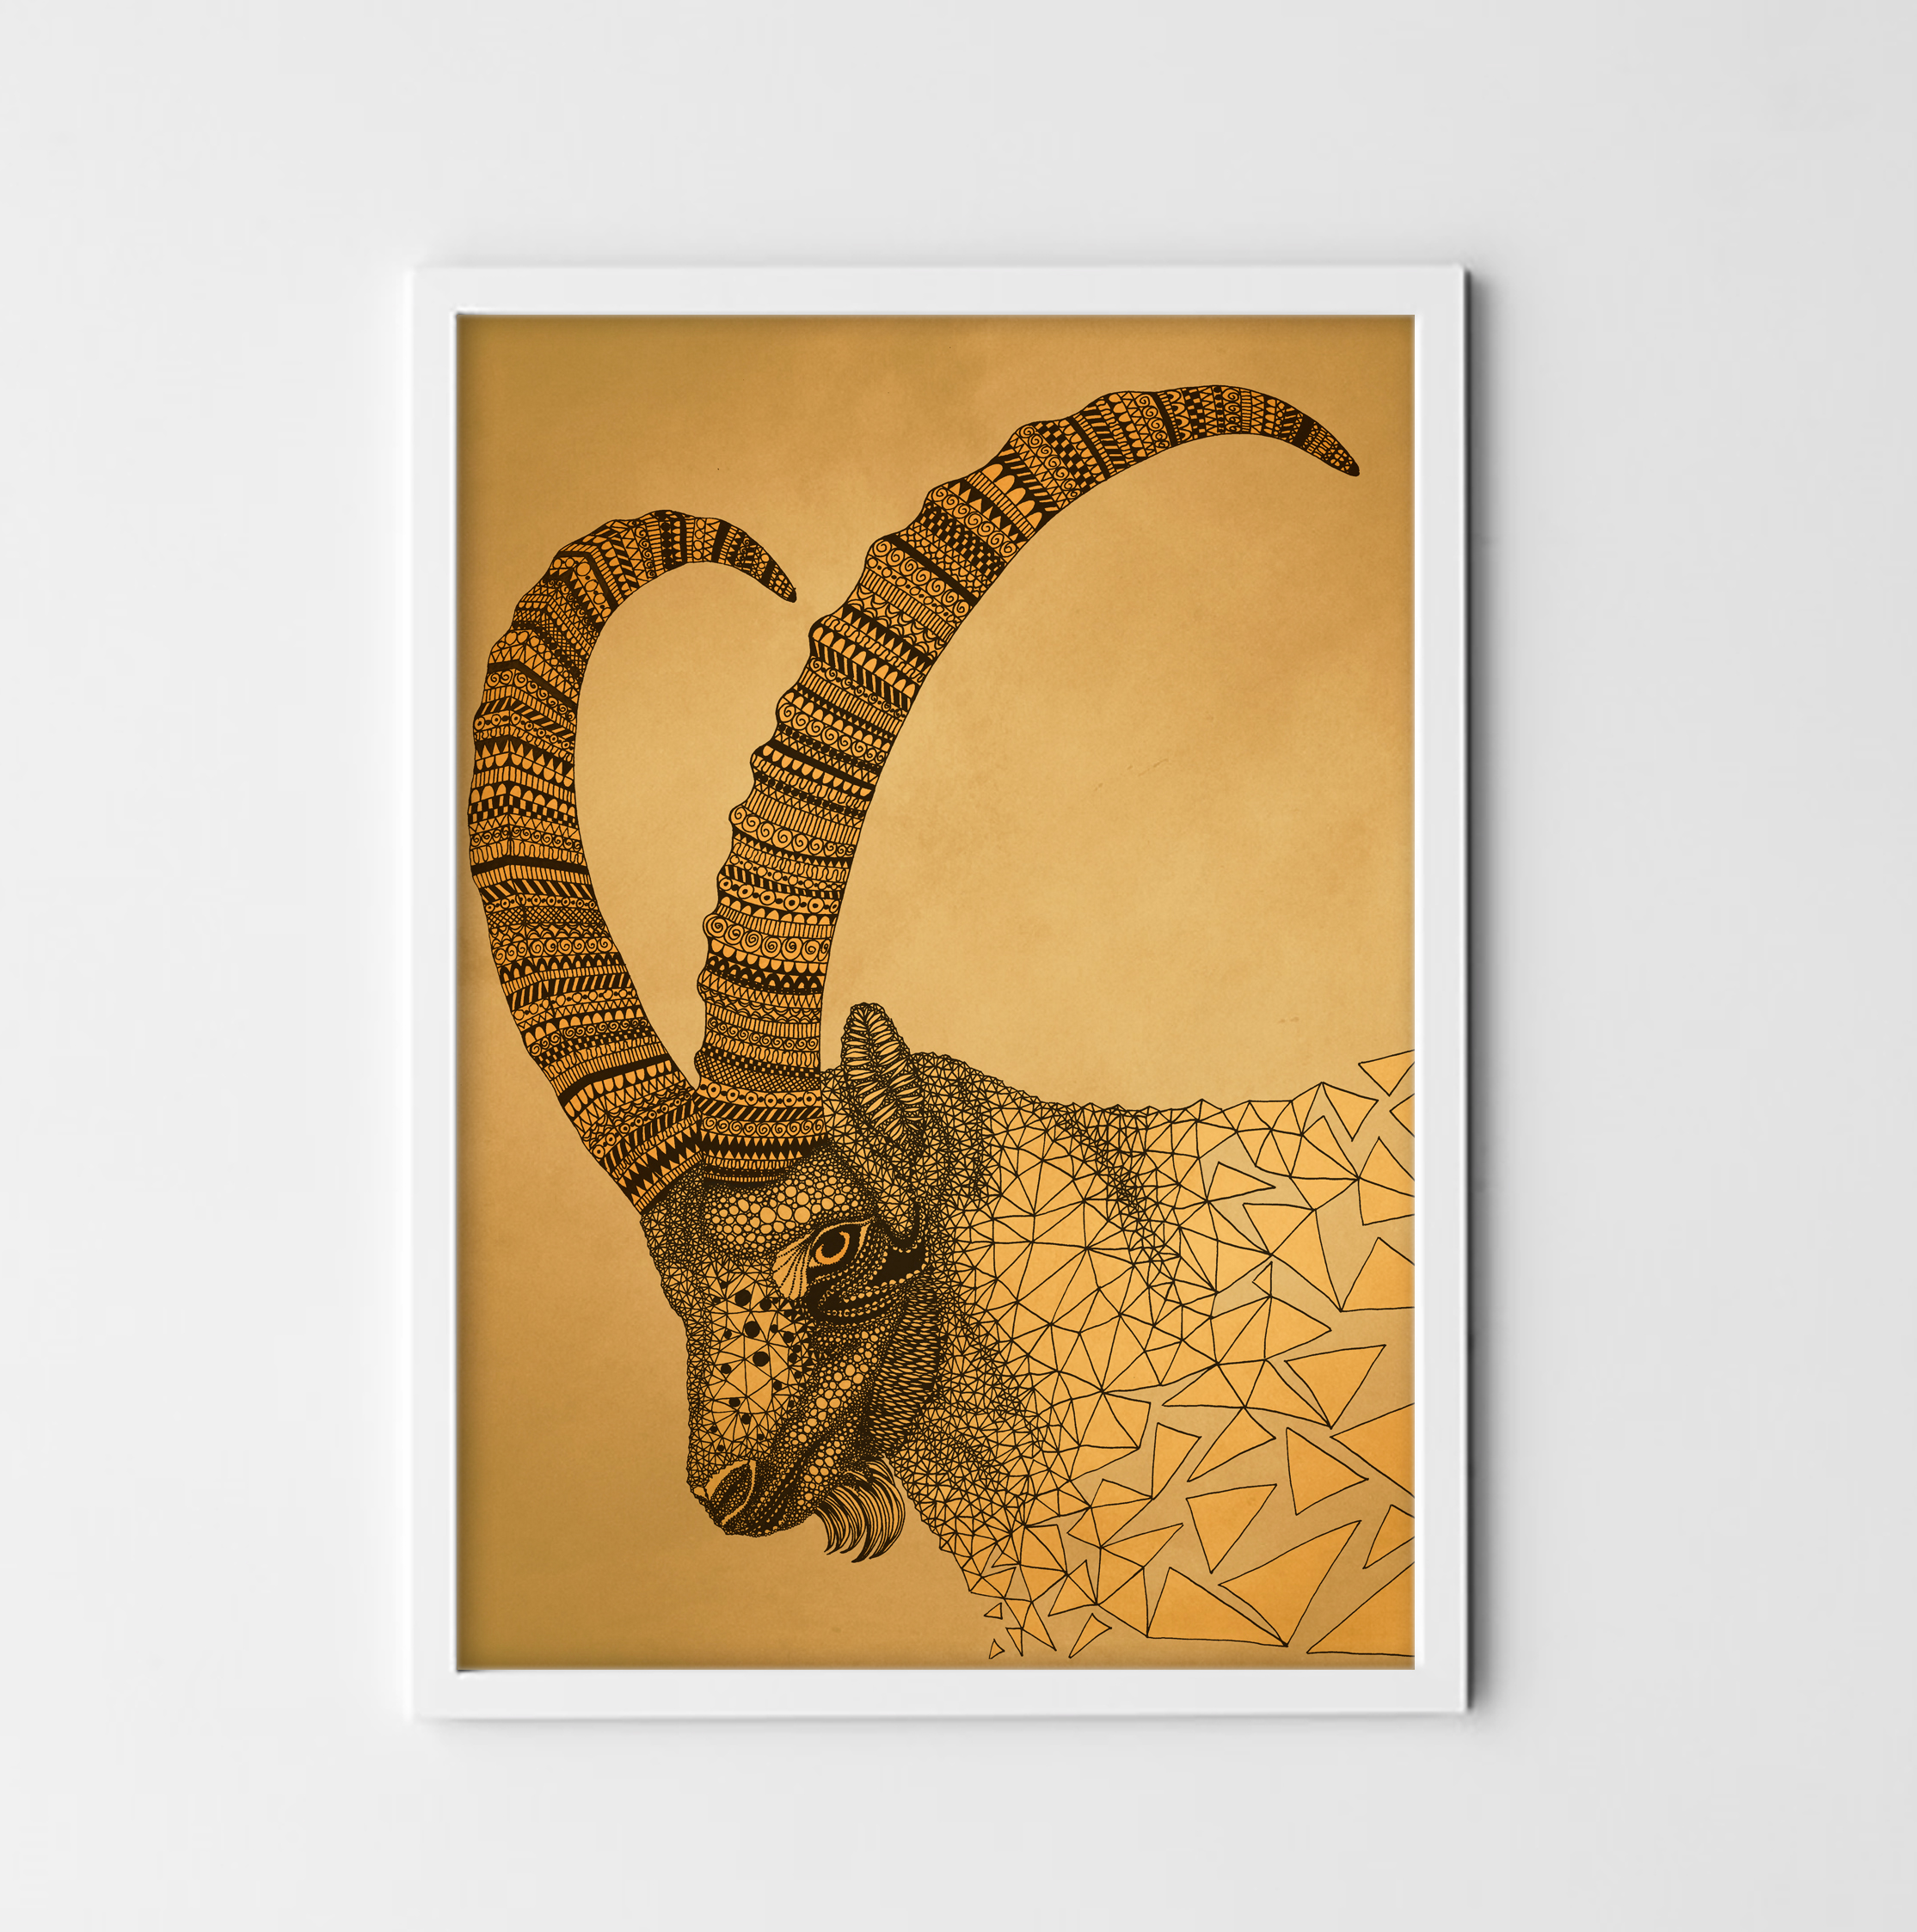 Capricorn - digital print